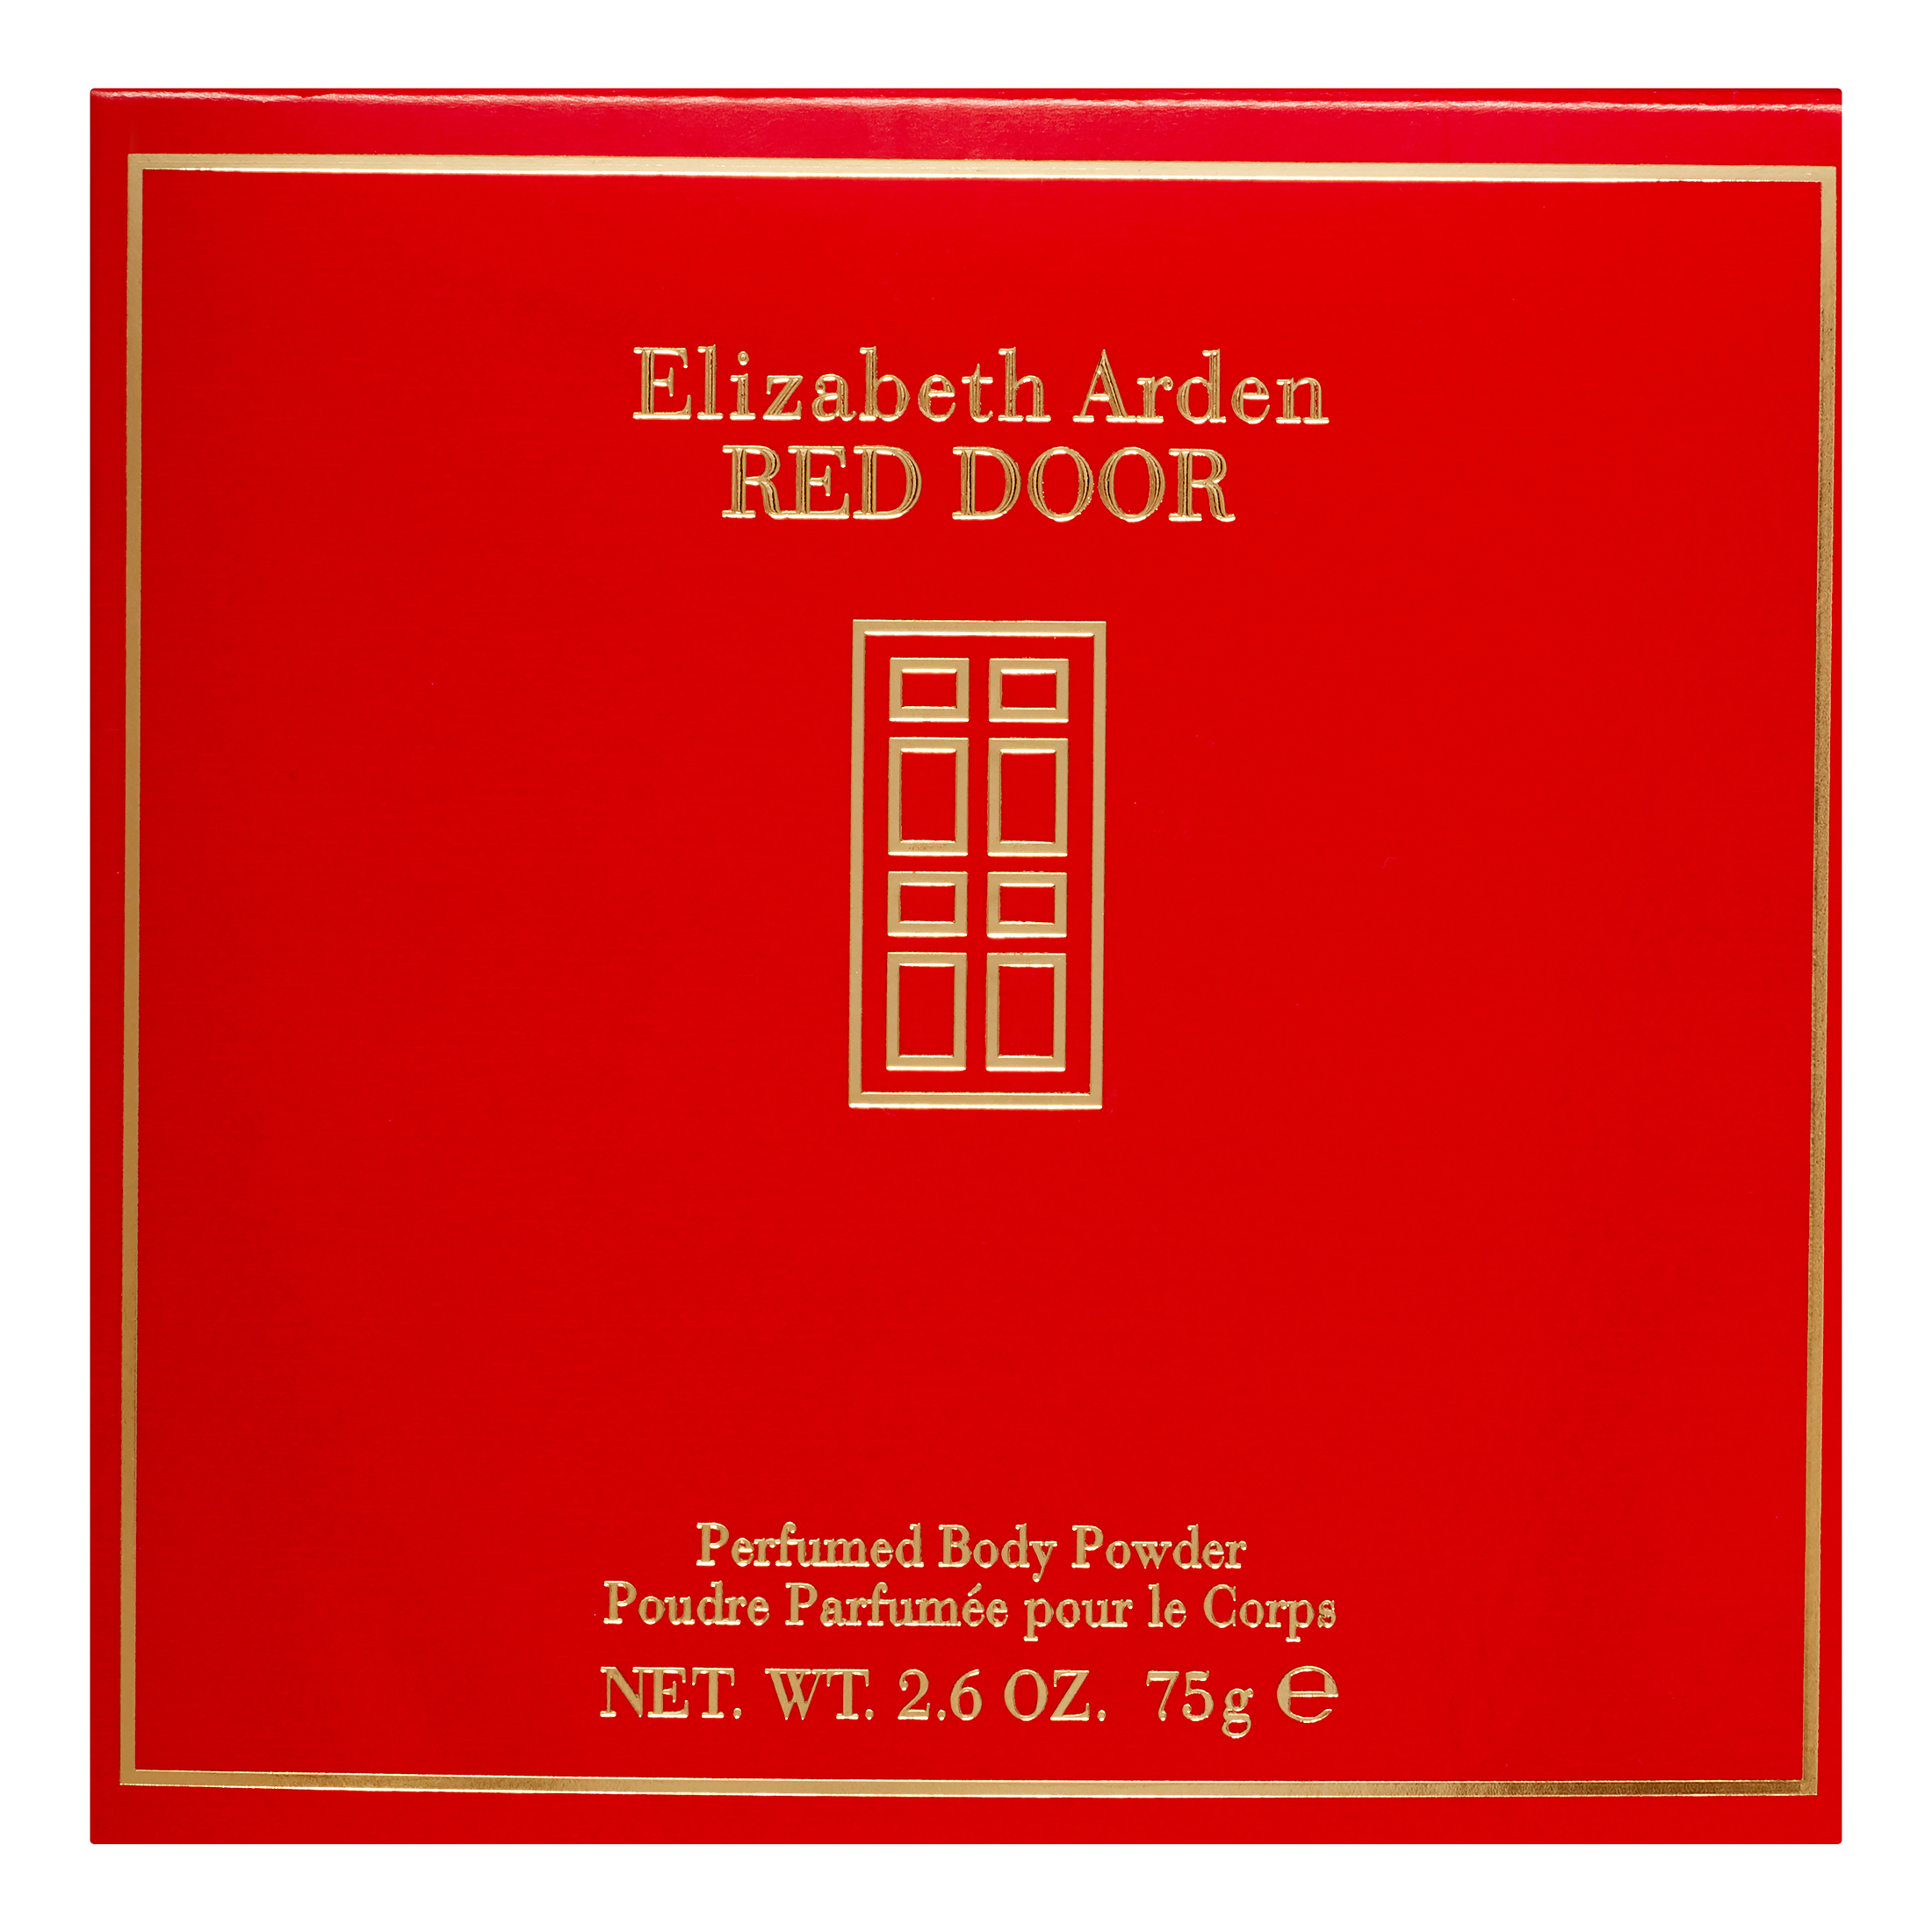 Attirant Elizabeth Arden Red Door Perfumed Body Powder, 2.6 Oz